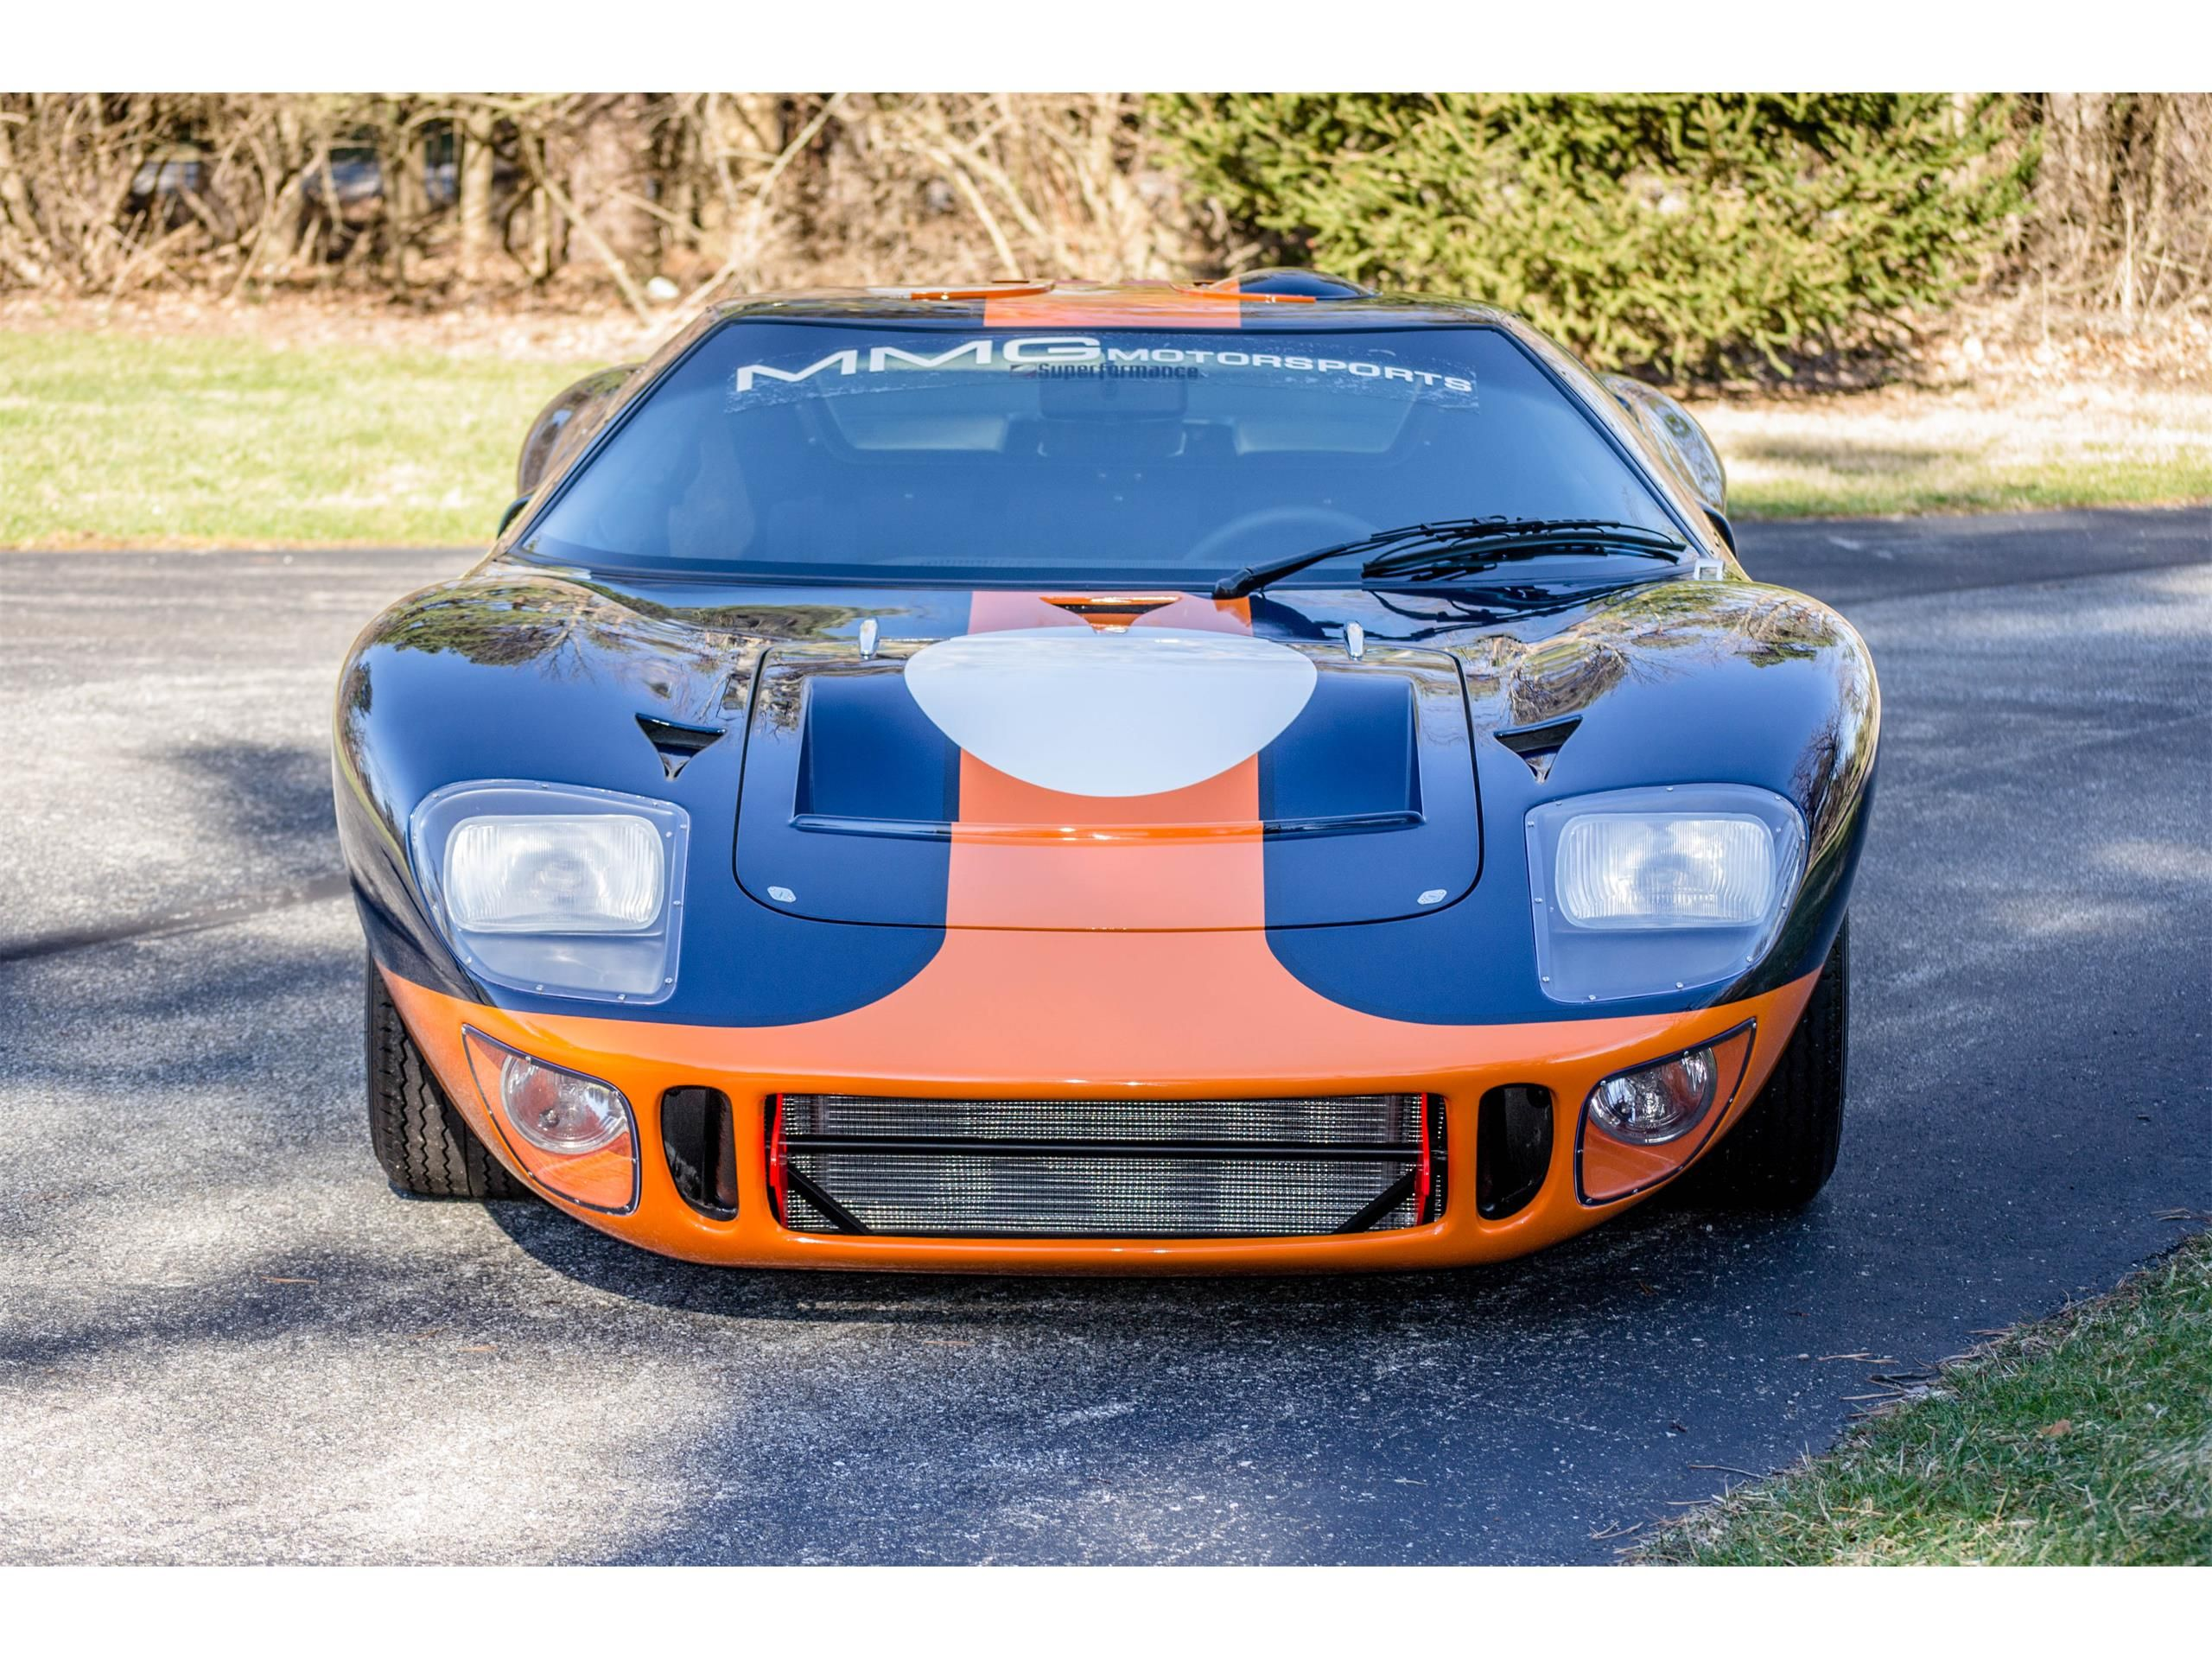 1966 Superformance Gt40 Located In Ohio Offered By Mansfield Motor Group For Sale Listing Id Cc 990577 Classiccars Com Dri Gt40 Ford Gt Gulf Oil Racing